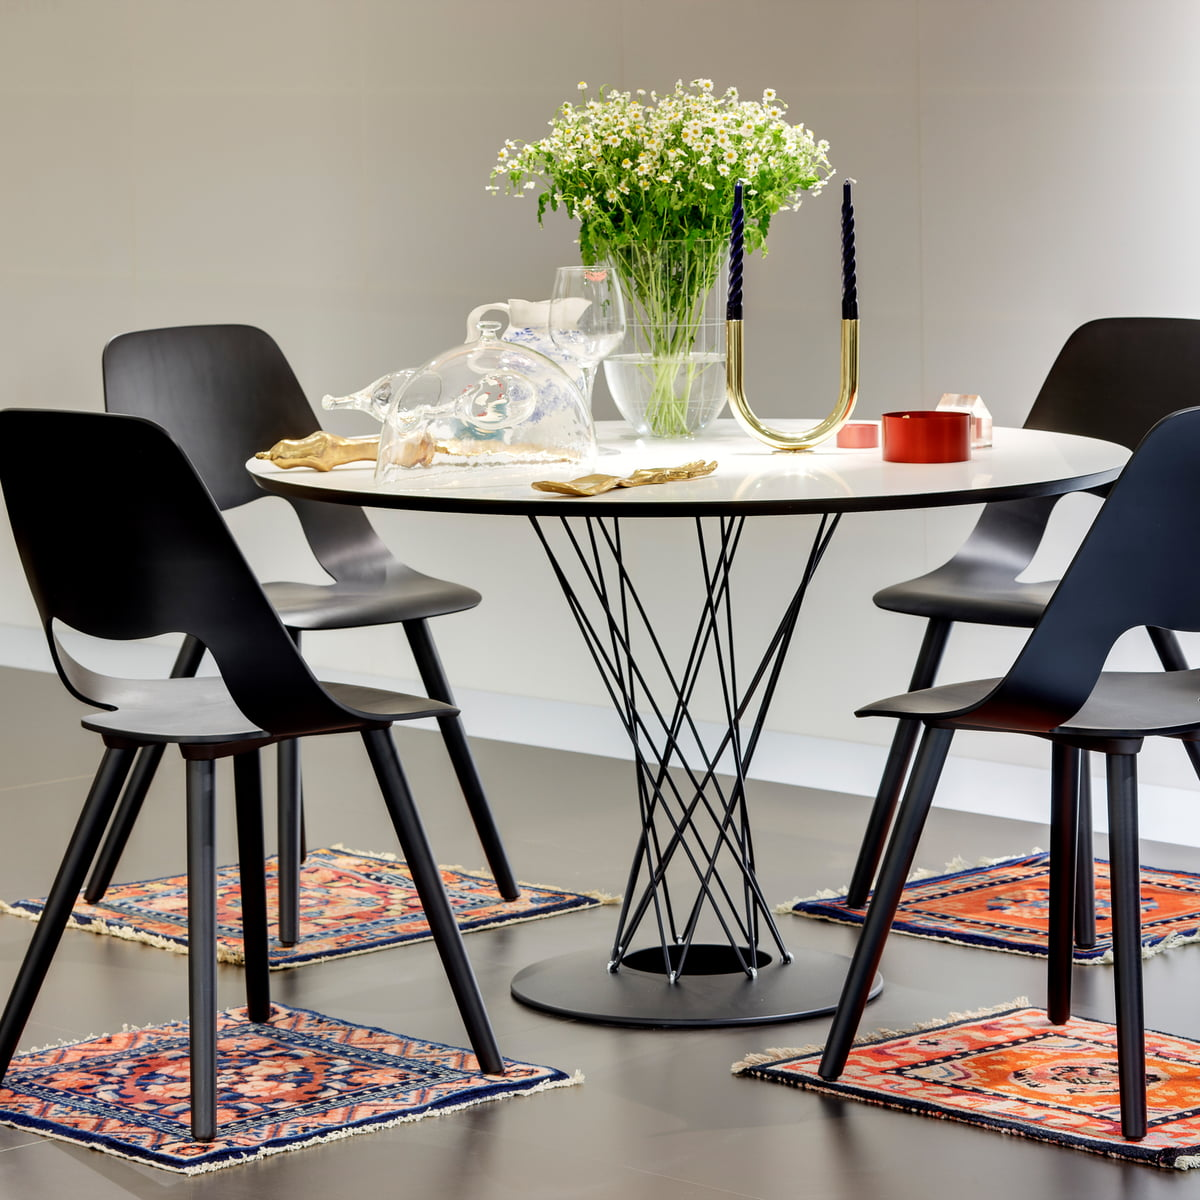 isamu noguchi dining table by vitra. Black Bedroom Furniture Sets. Home Design Ideas